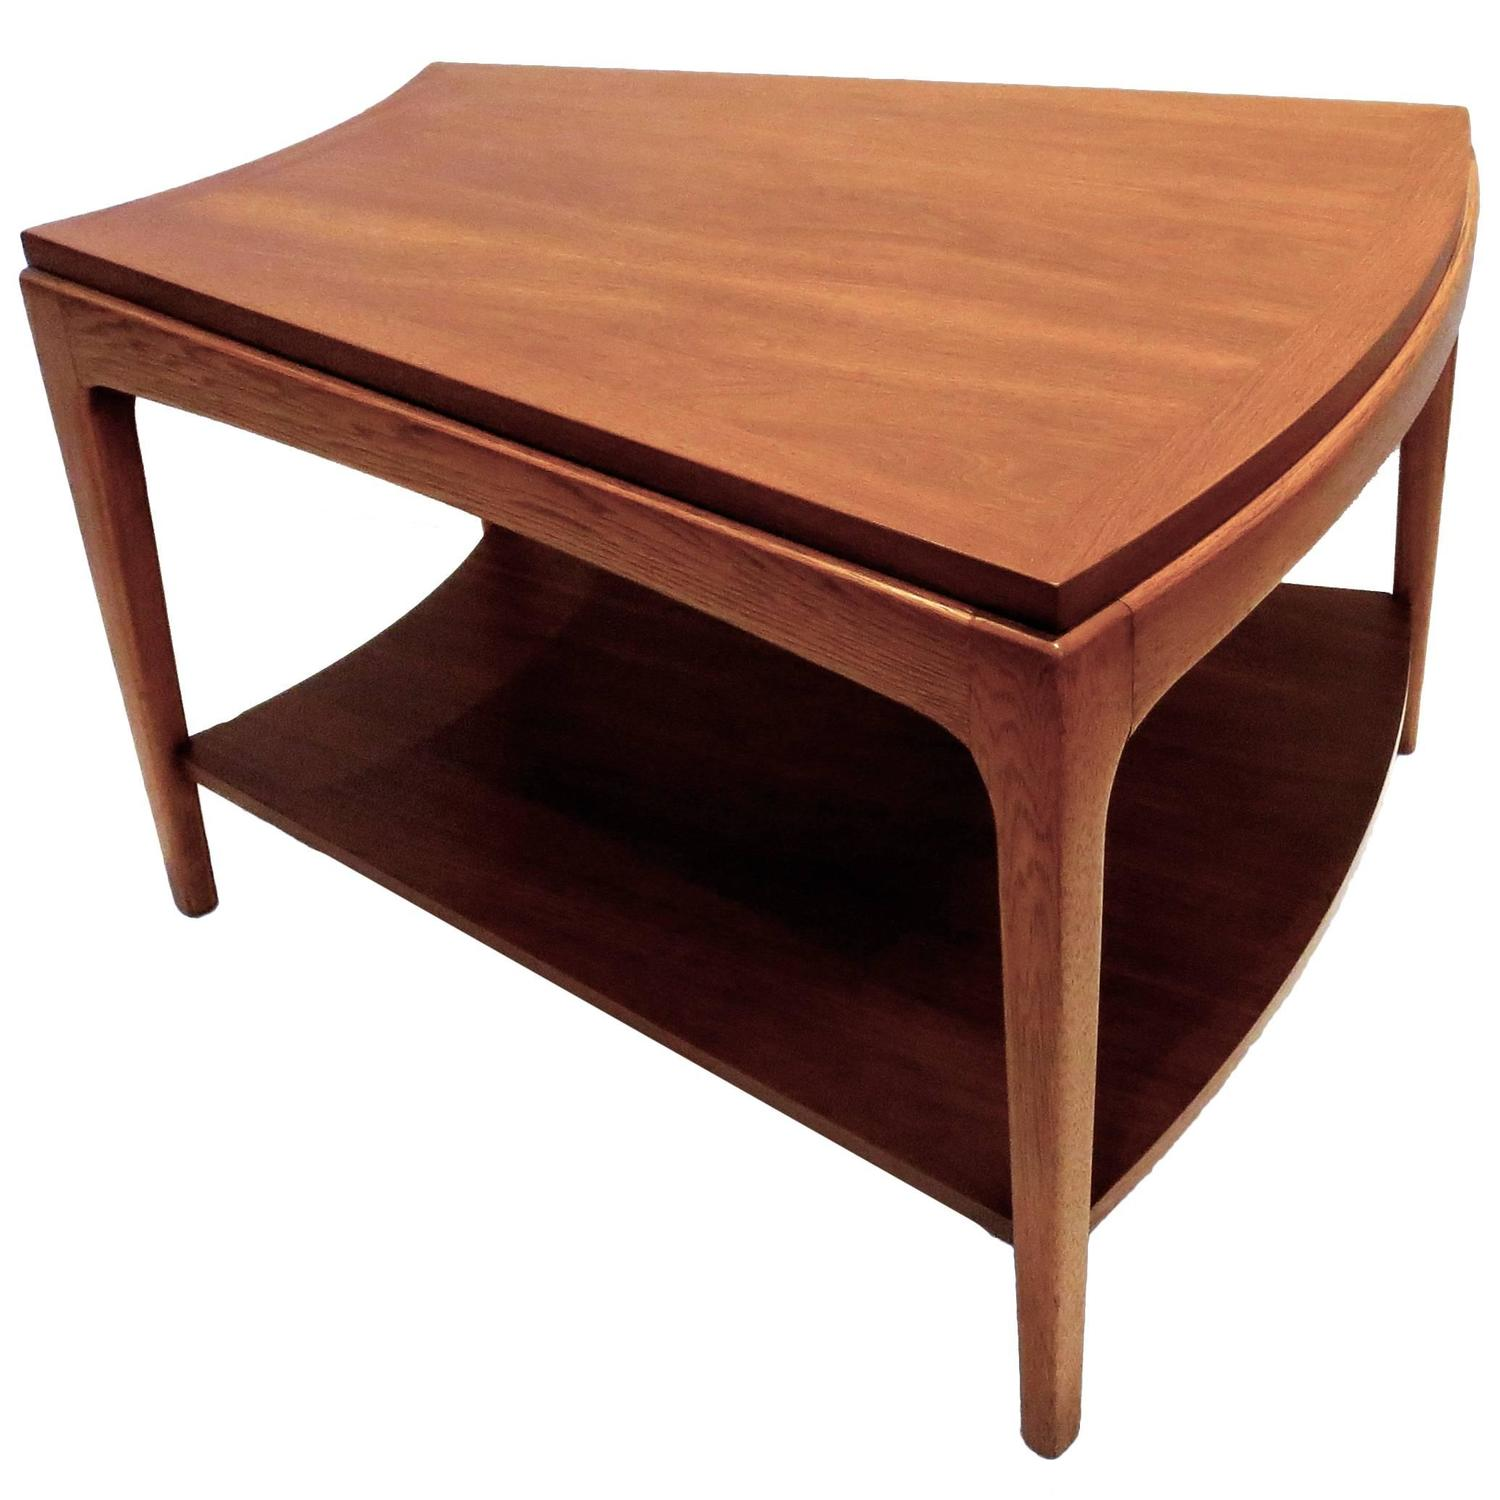 1950s american modern trapezoid shape cocktail end table for Trapezoid table